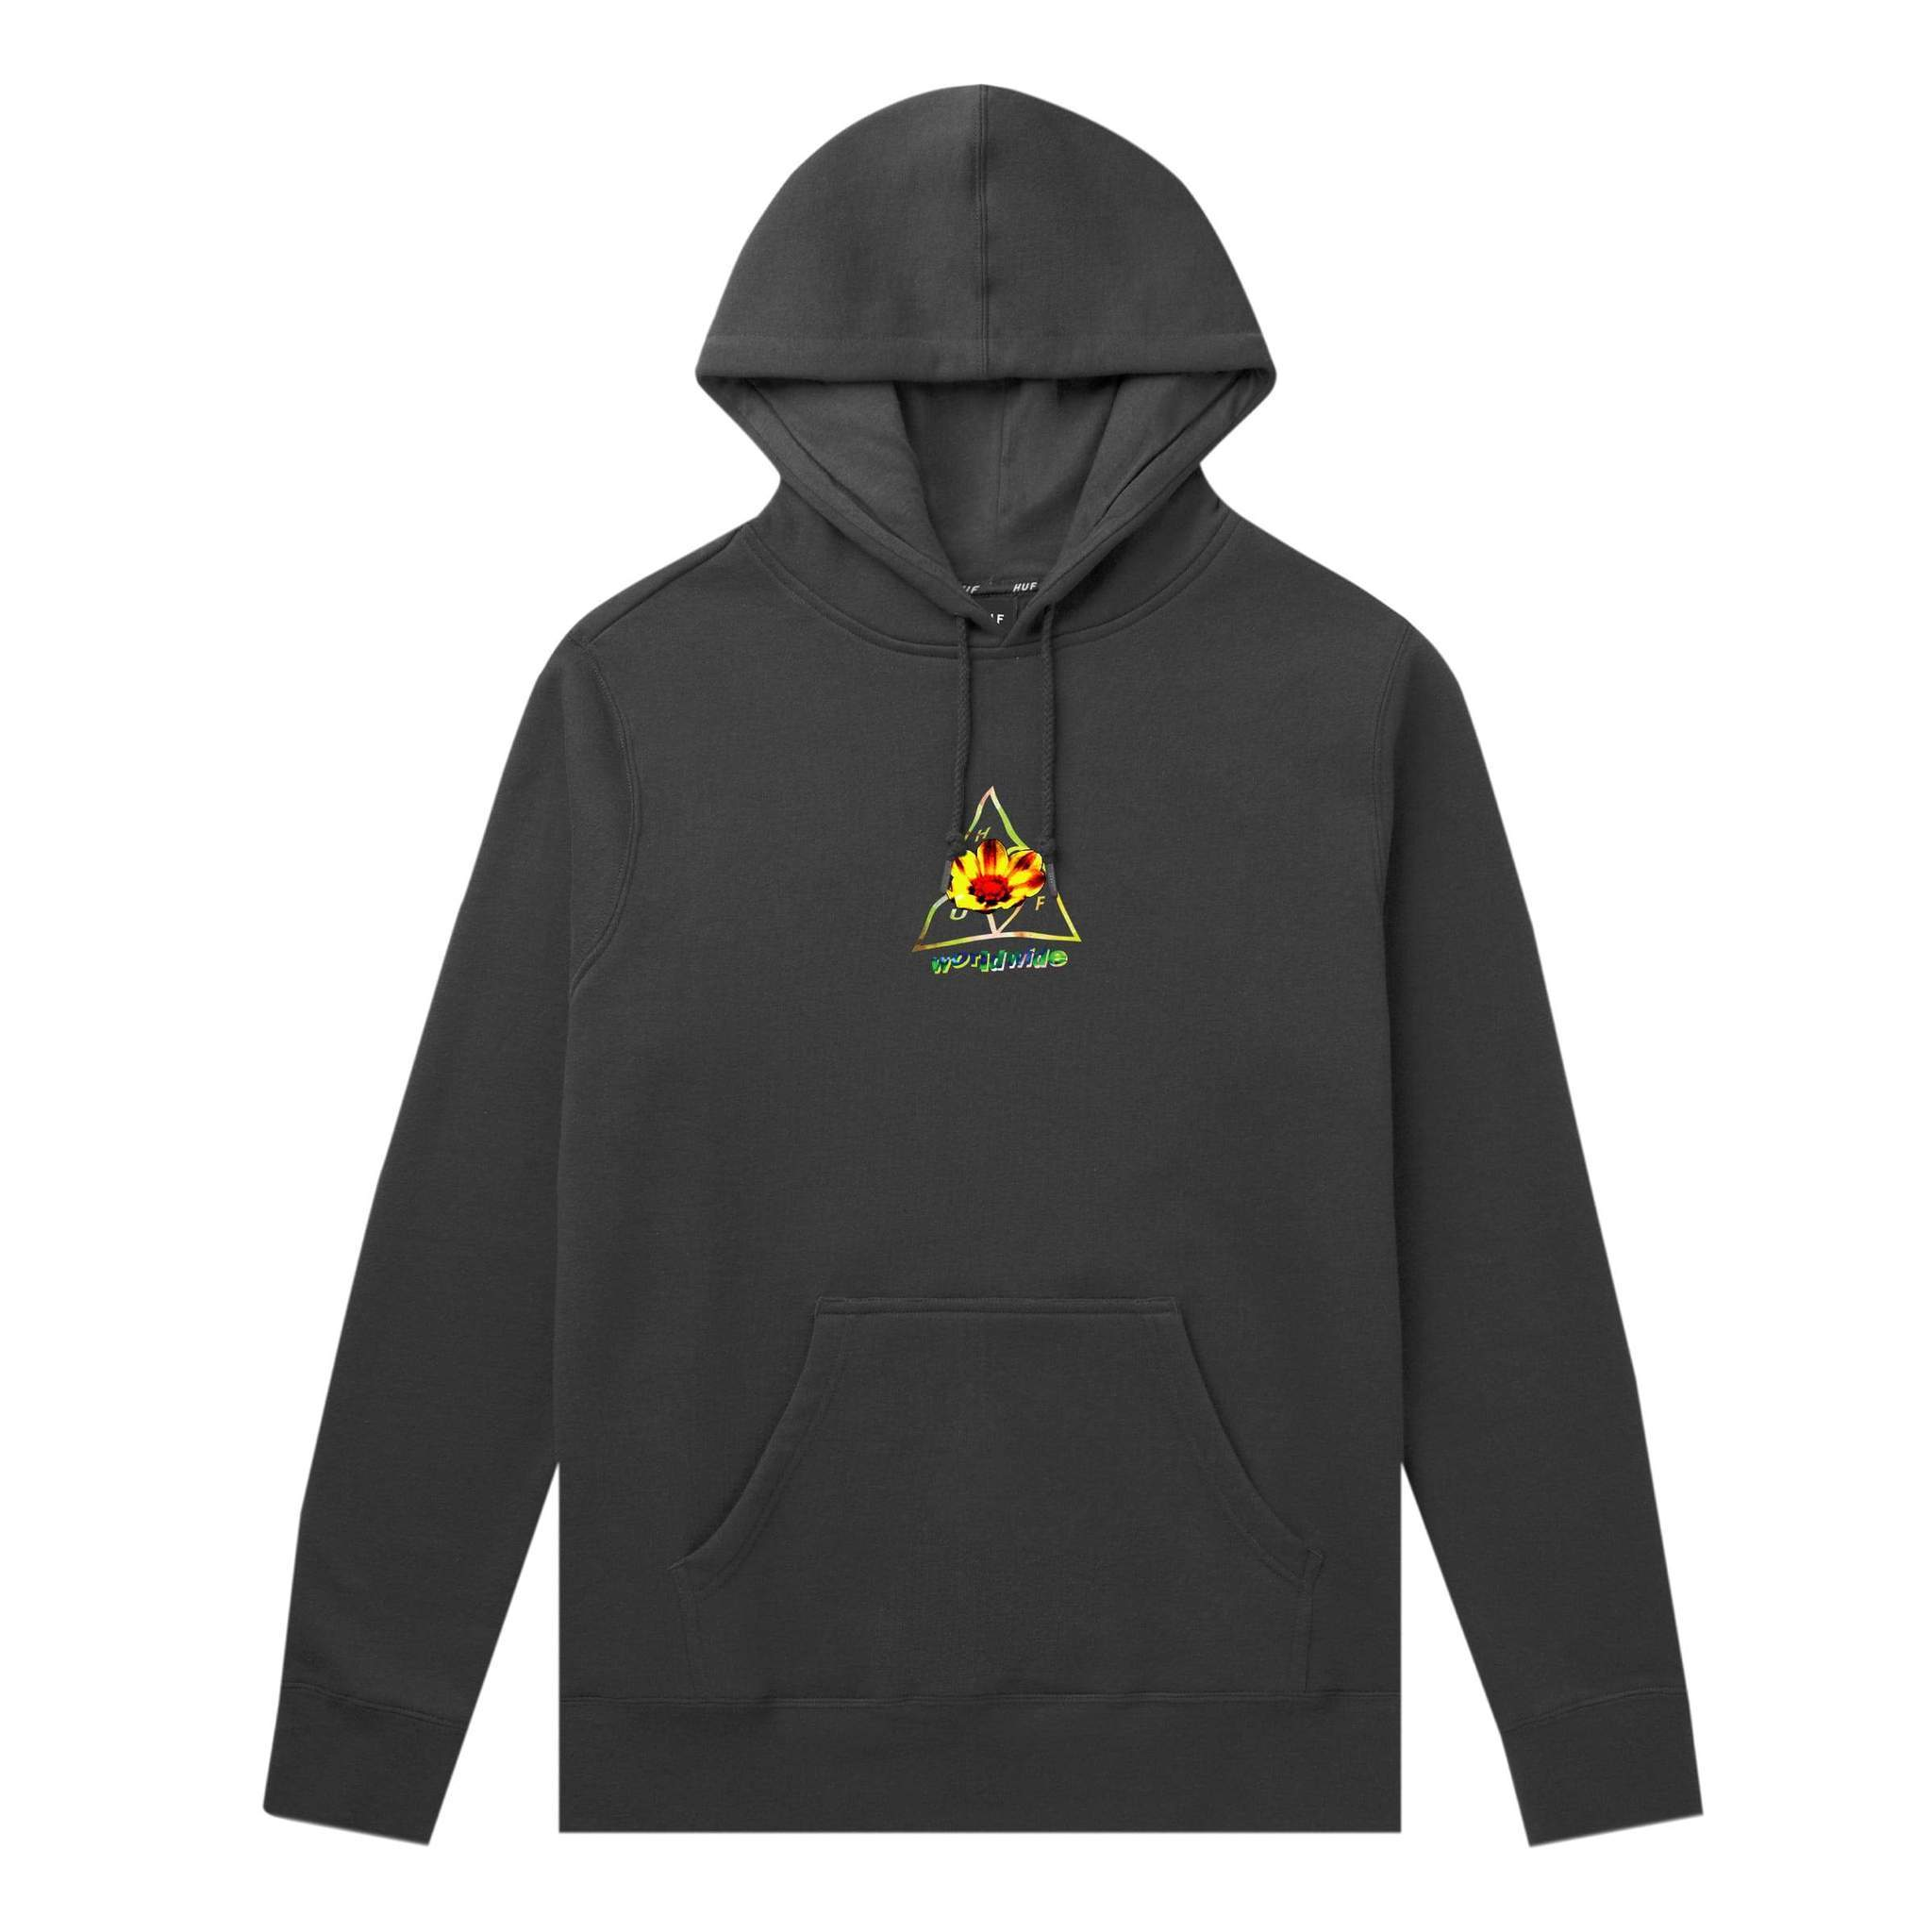 Huf Come Down Pullover Hoodie - Black